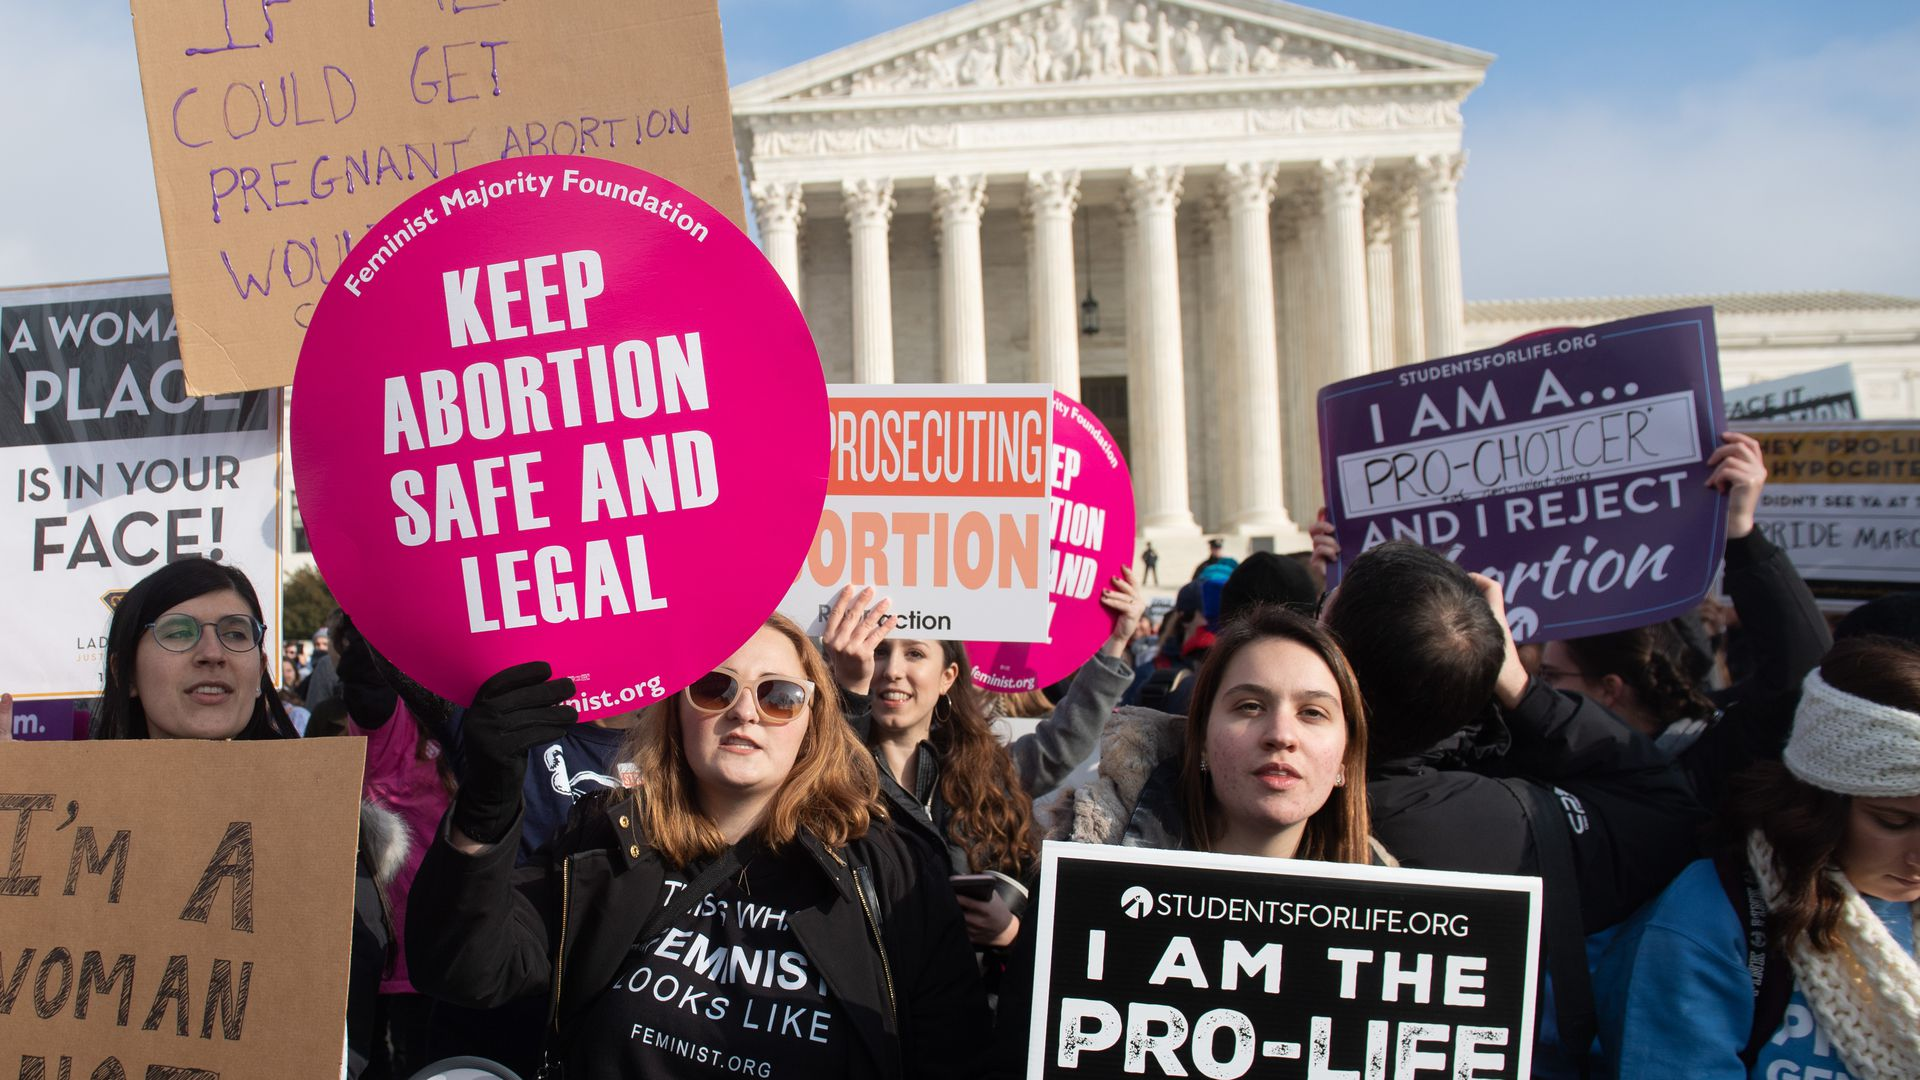 Pro-choice and abortion rights activists protesting outside the U.S. Supreme Court.